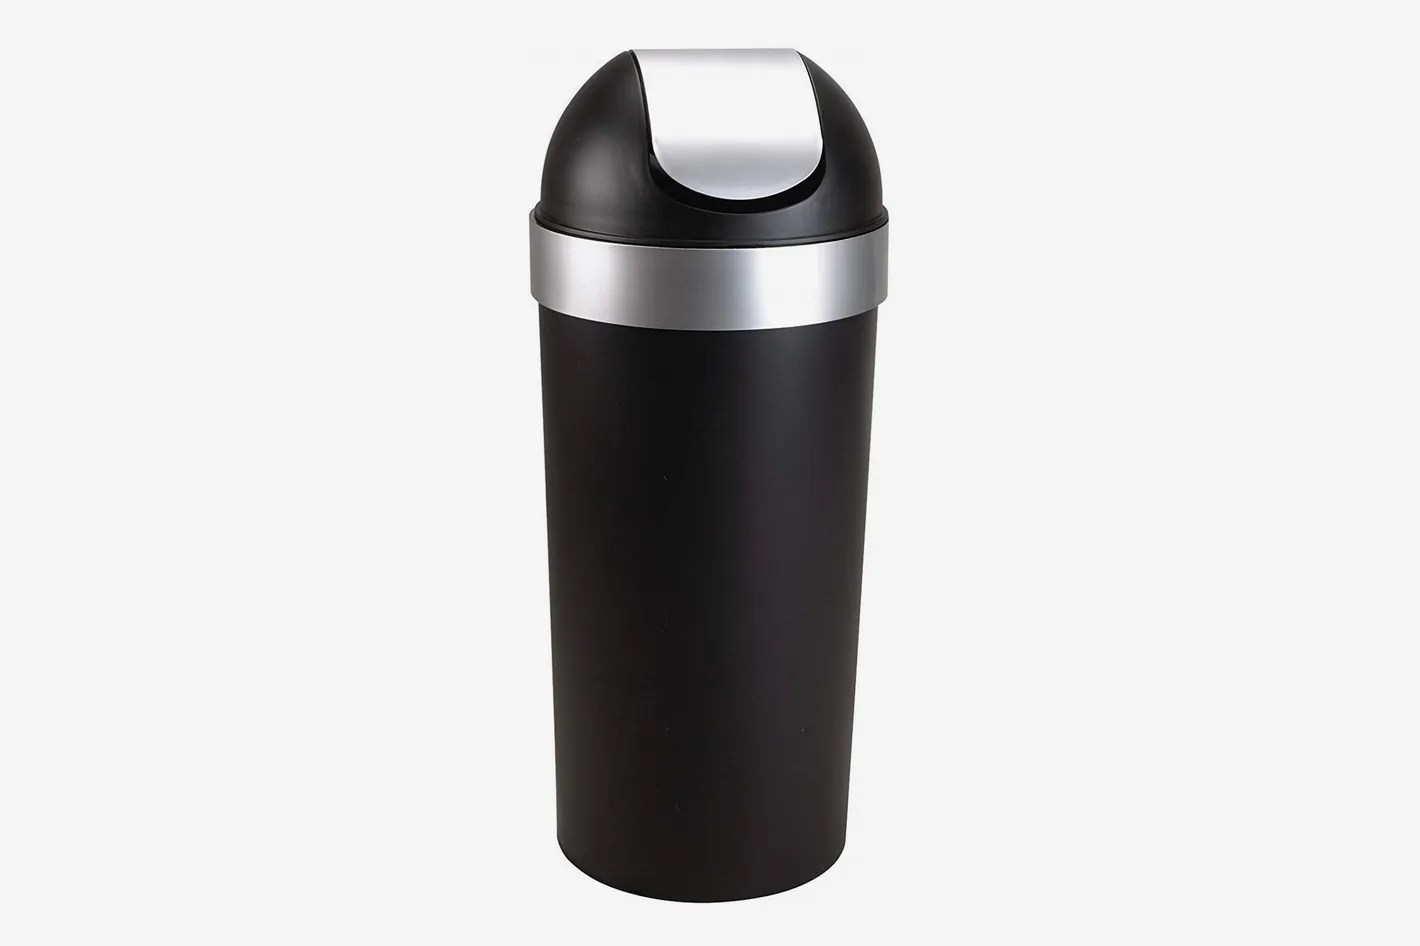 Small Kitchen Trash Cans 13 Best Kitchen Trash Cans 2019